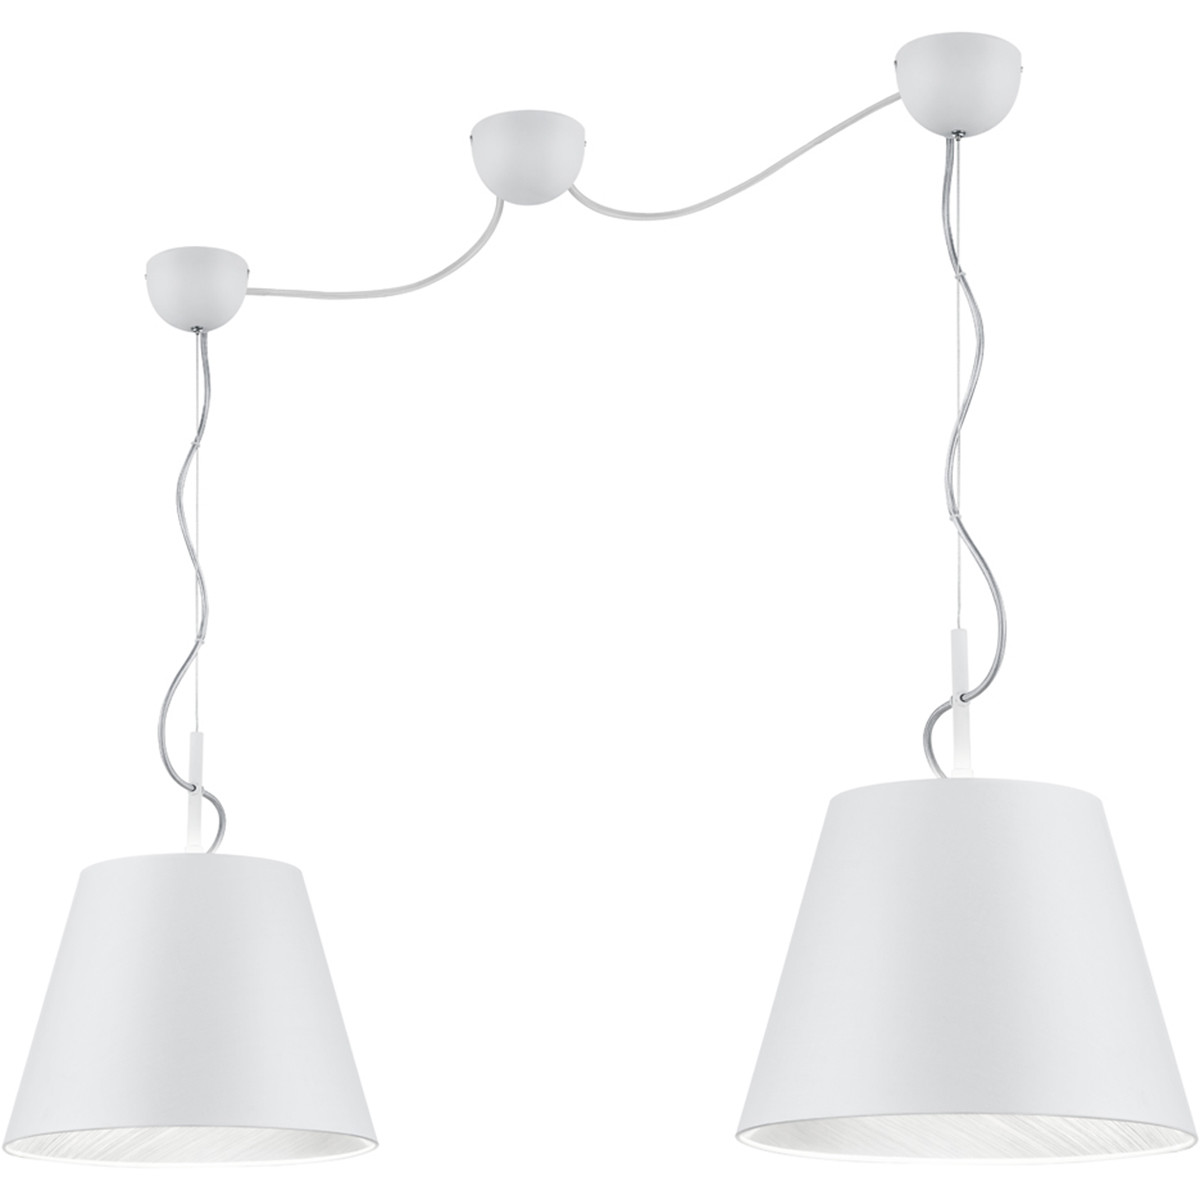 LED Hanglamp - Trion Andra - E27 Fitting - 2-lichts - Rond - Mat Wit - Aluminium